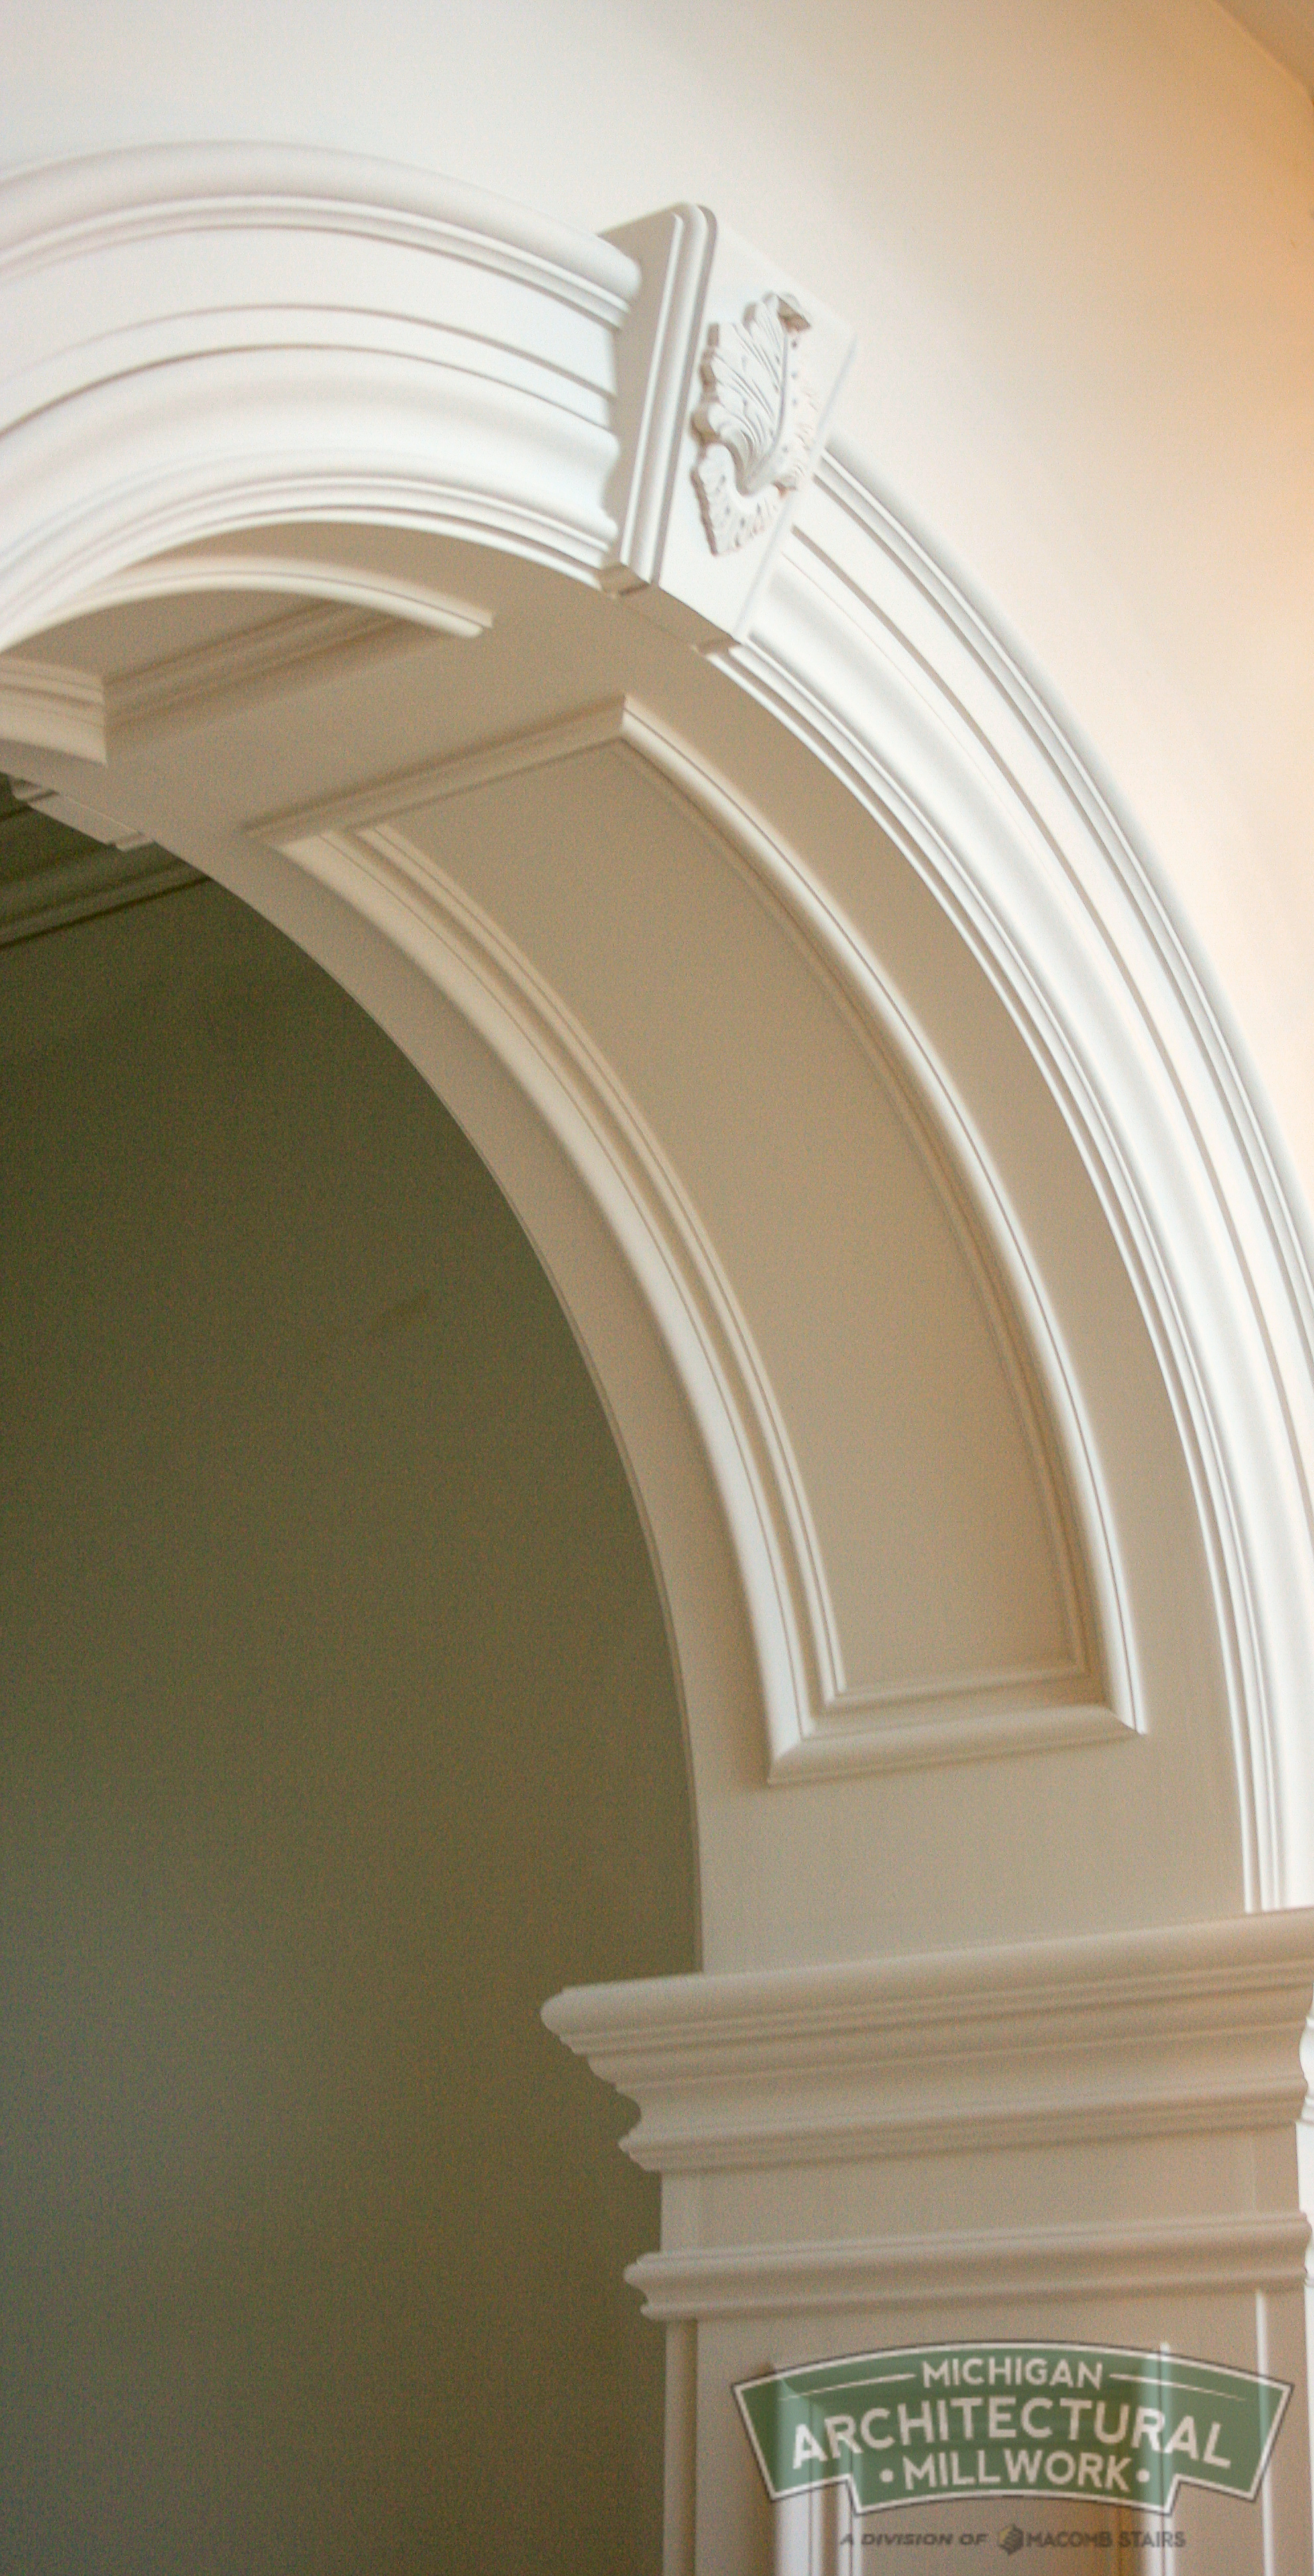 Michigan Architectural Millwork- Moulding and Millwork Photo-110.jpg